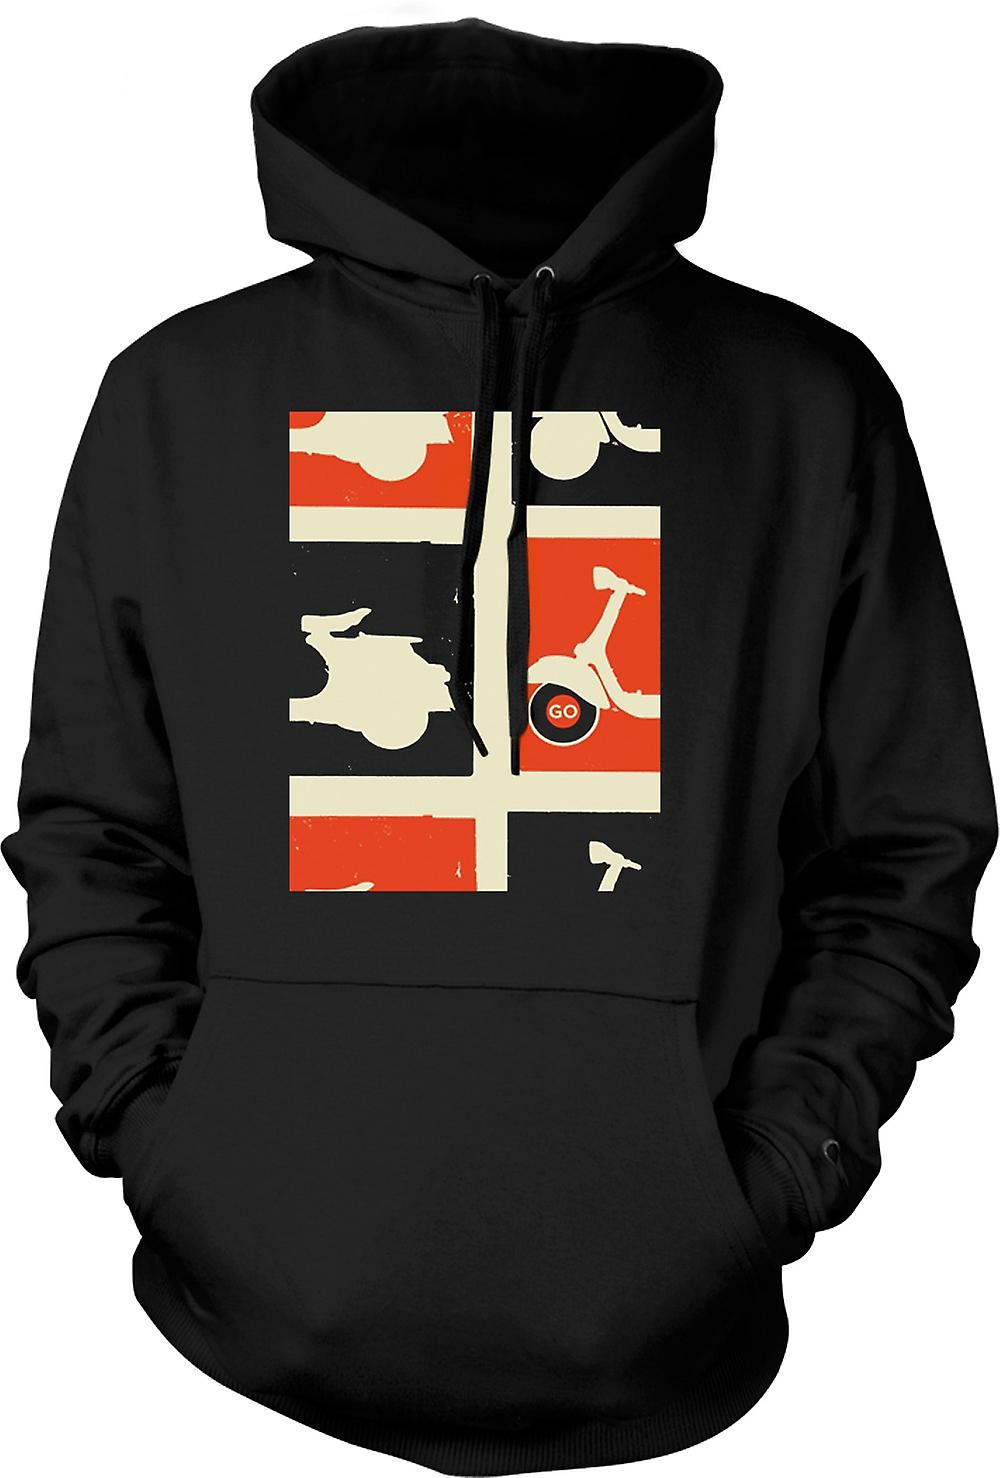 Kids Hoodie - Vespa Scooter - Pop Art Poster Go